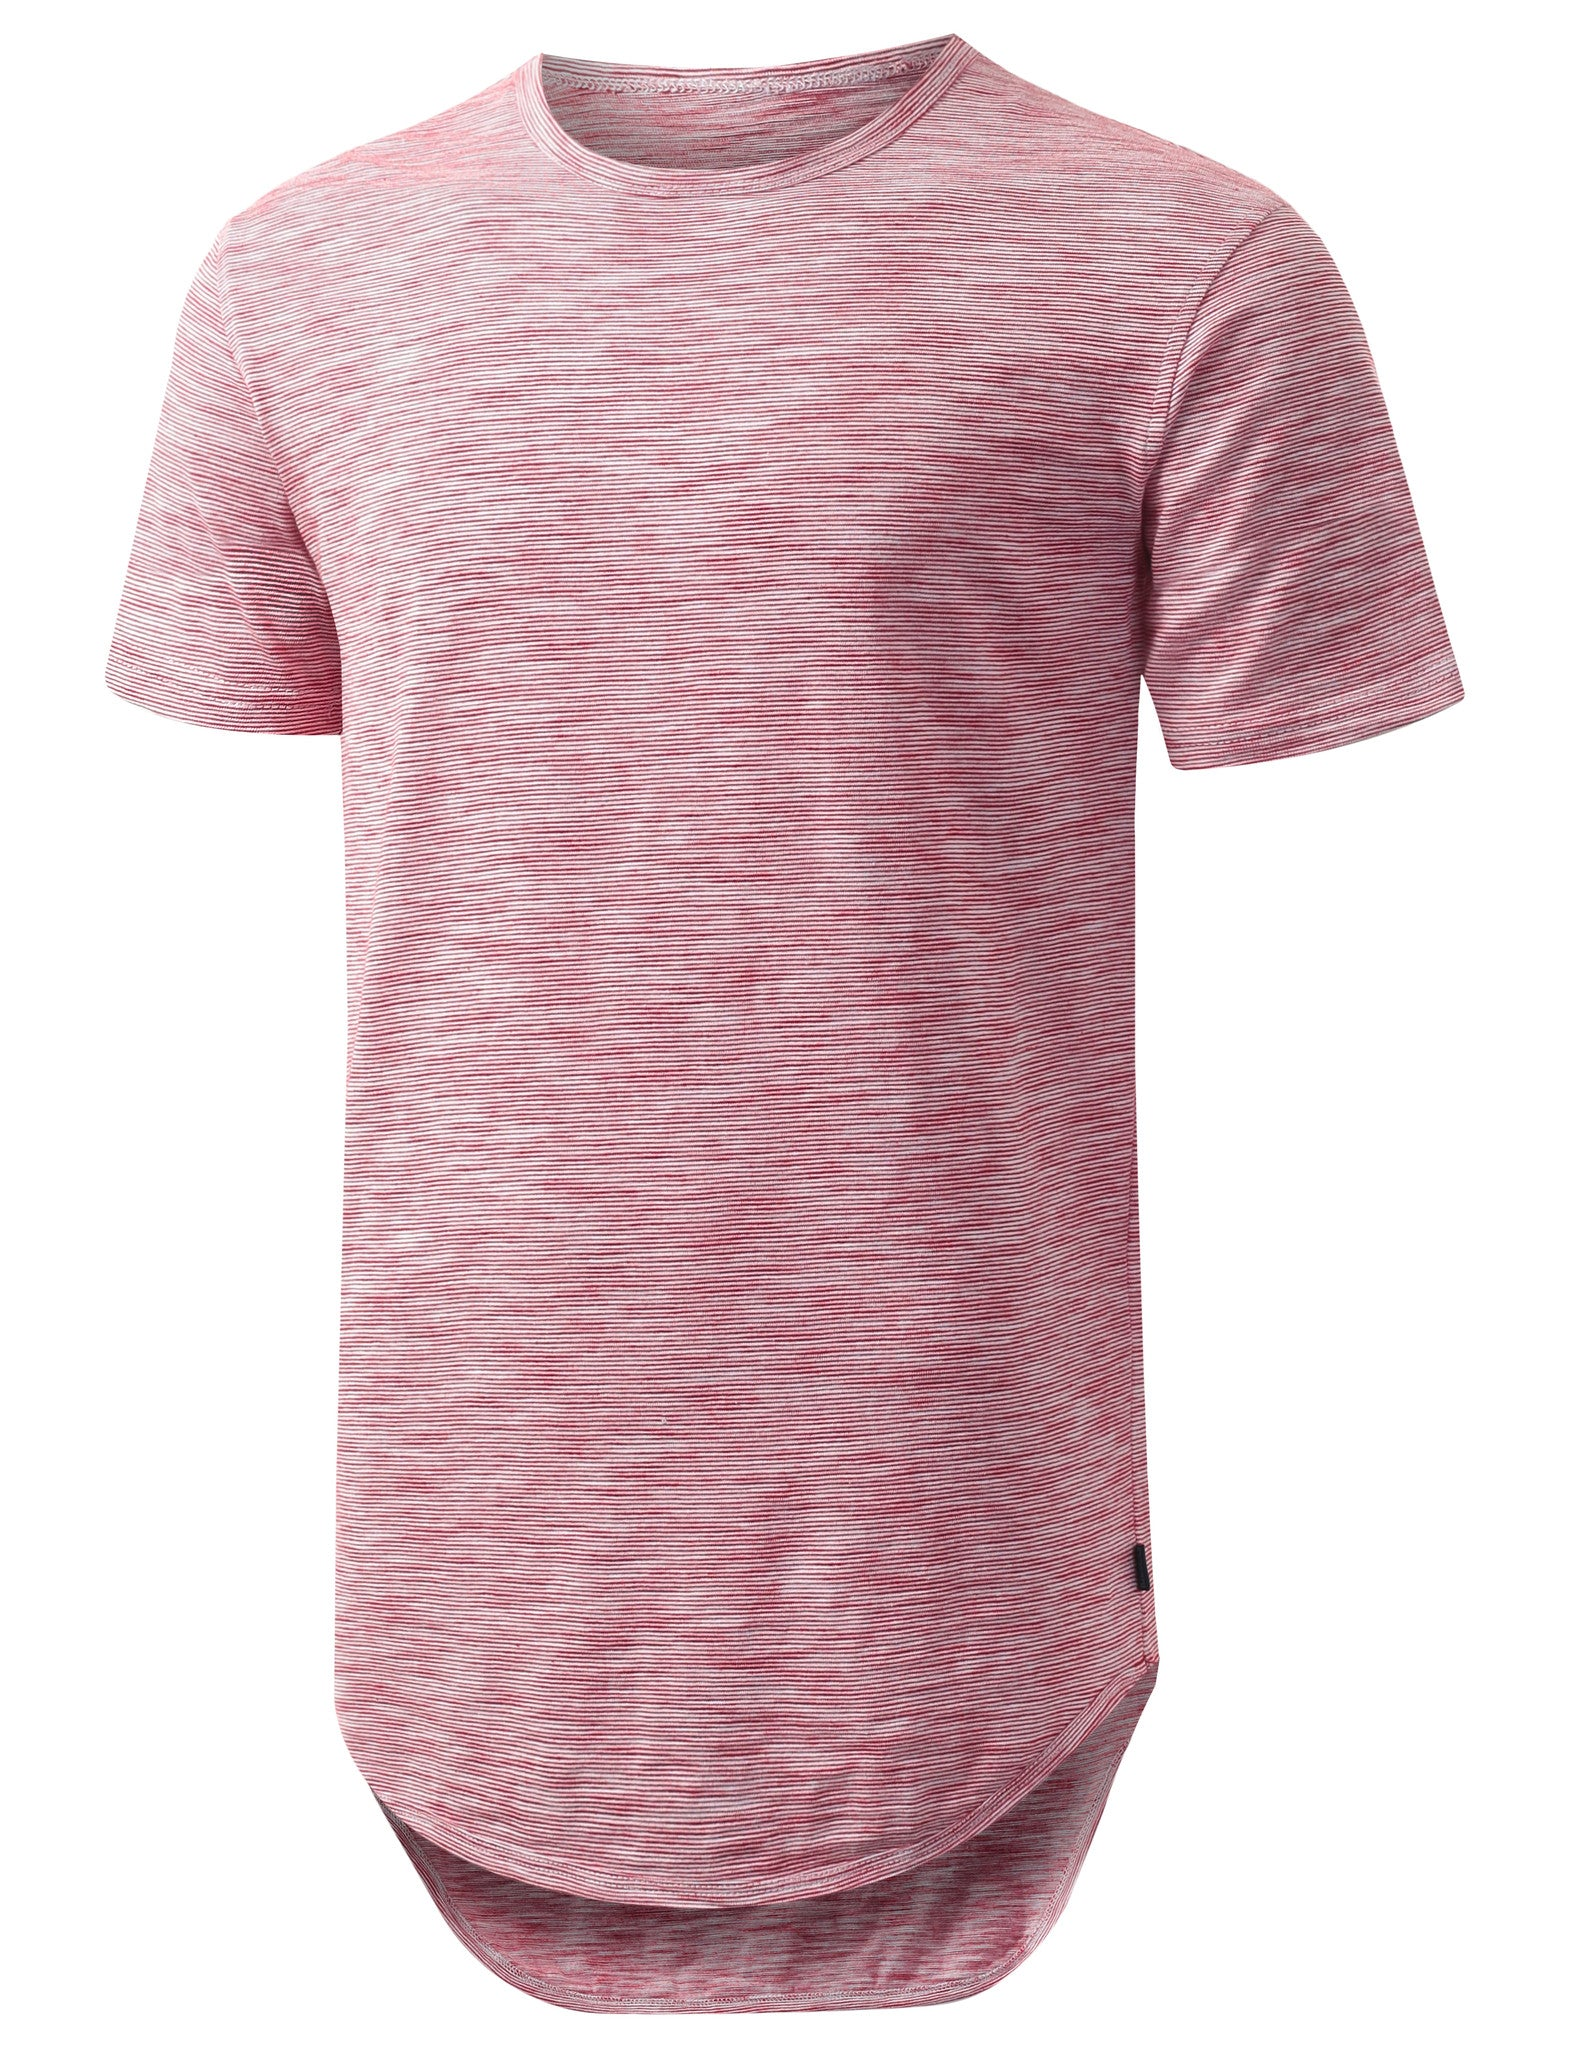 RED 2 Tone Weaved Longline Tshirt - URBANCREWS